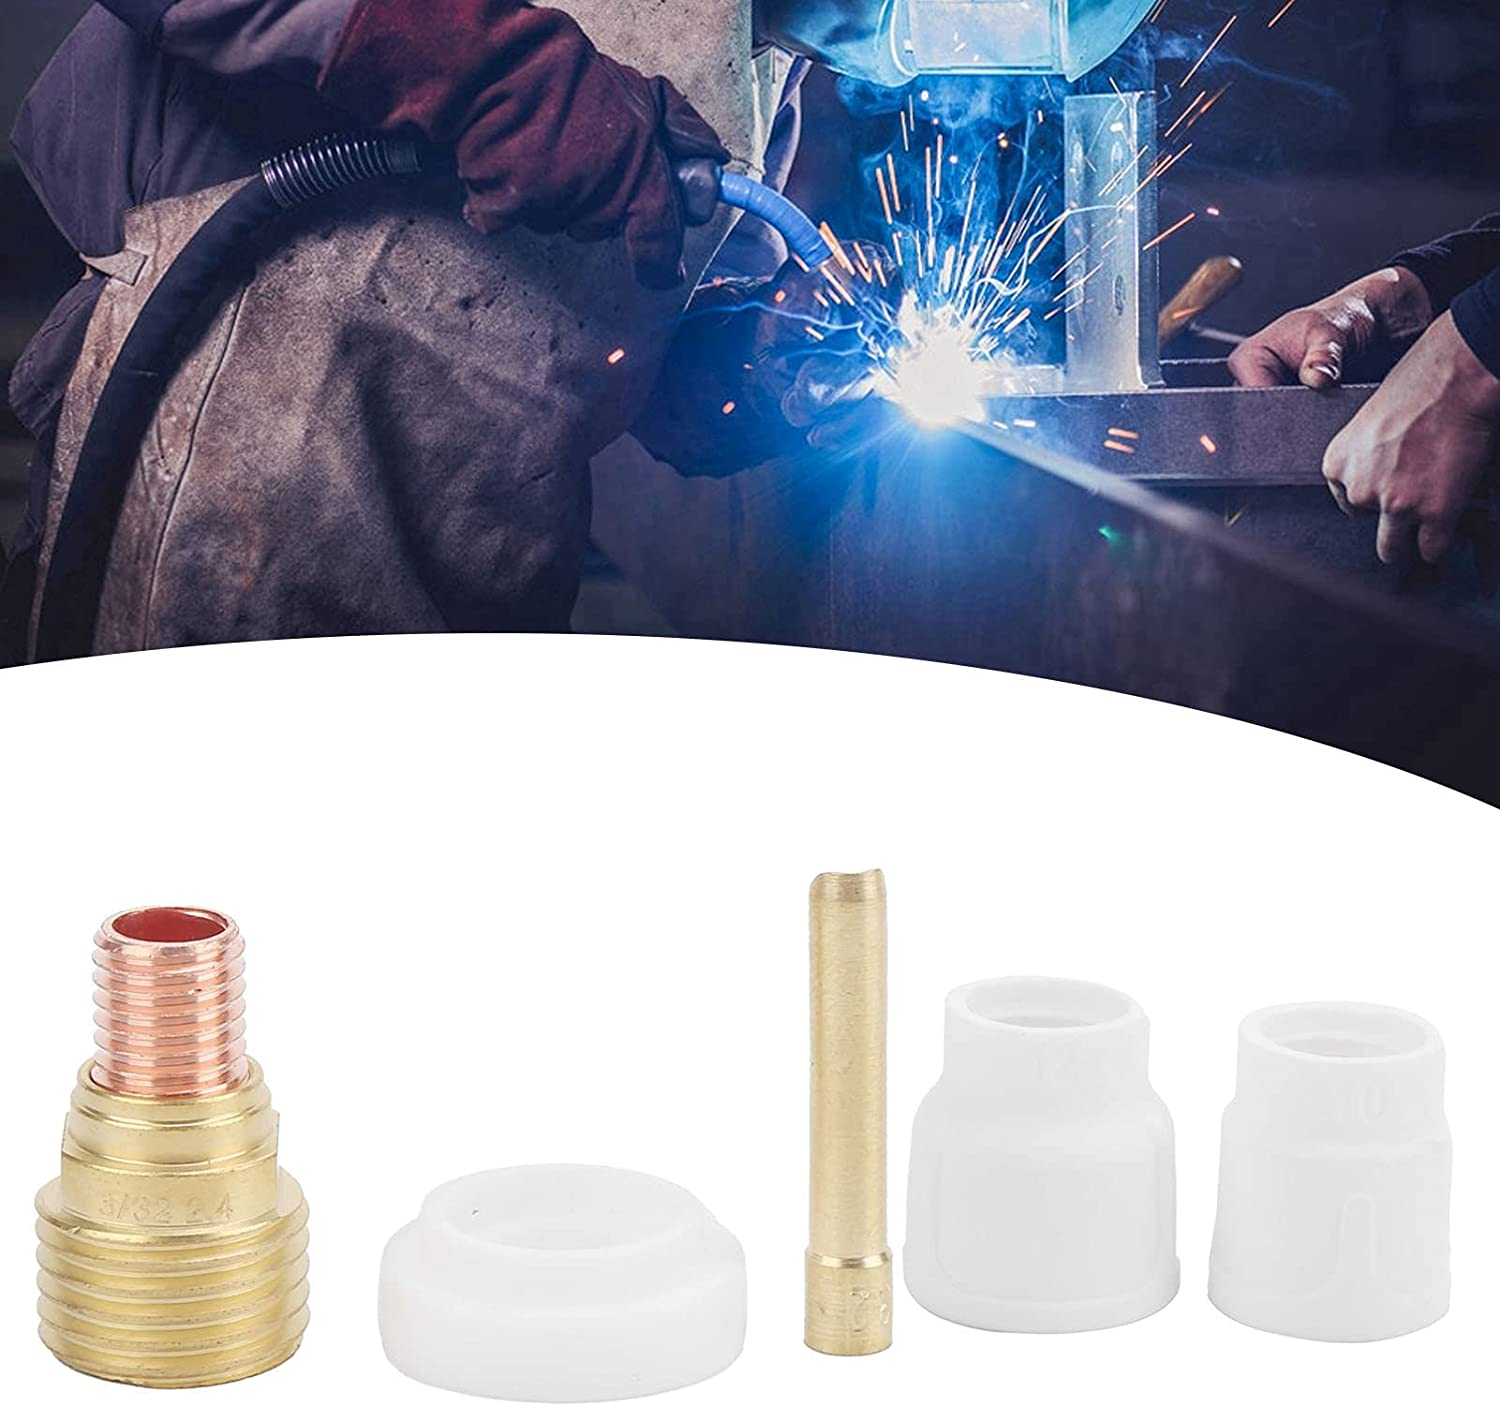 Popular BTIHCEUOT Now on sale Welding Cup Kit Performa Stable Lasting Long